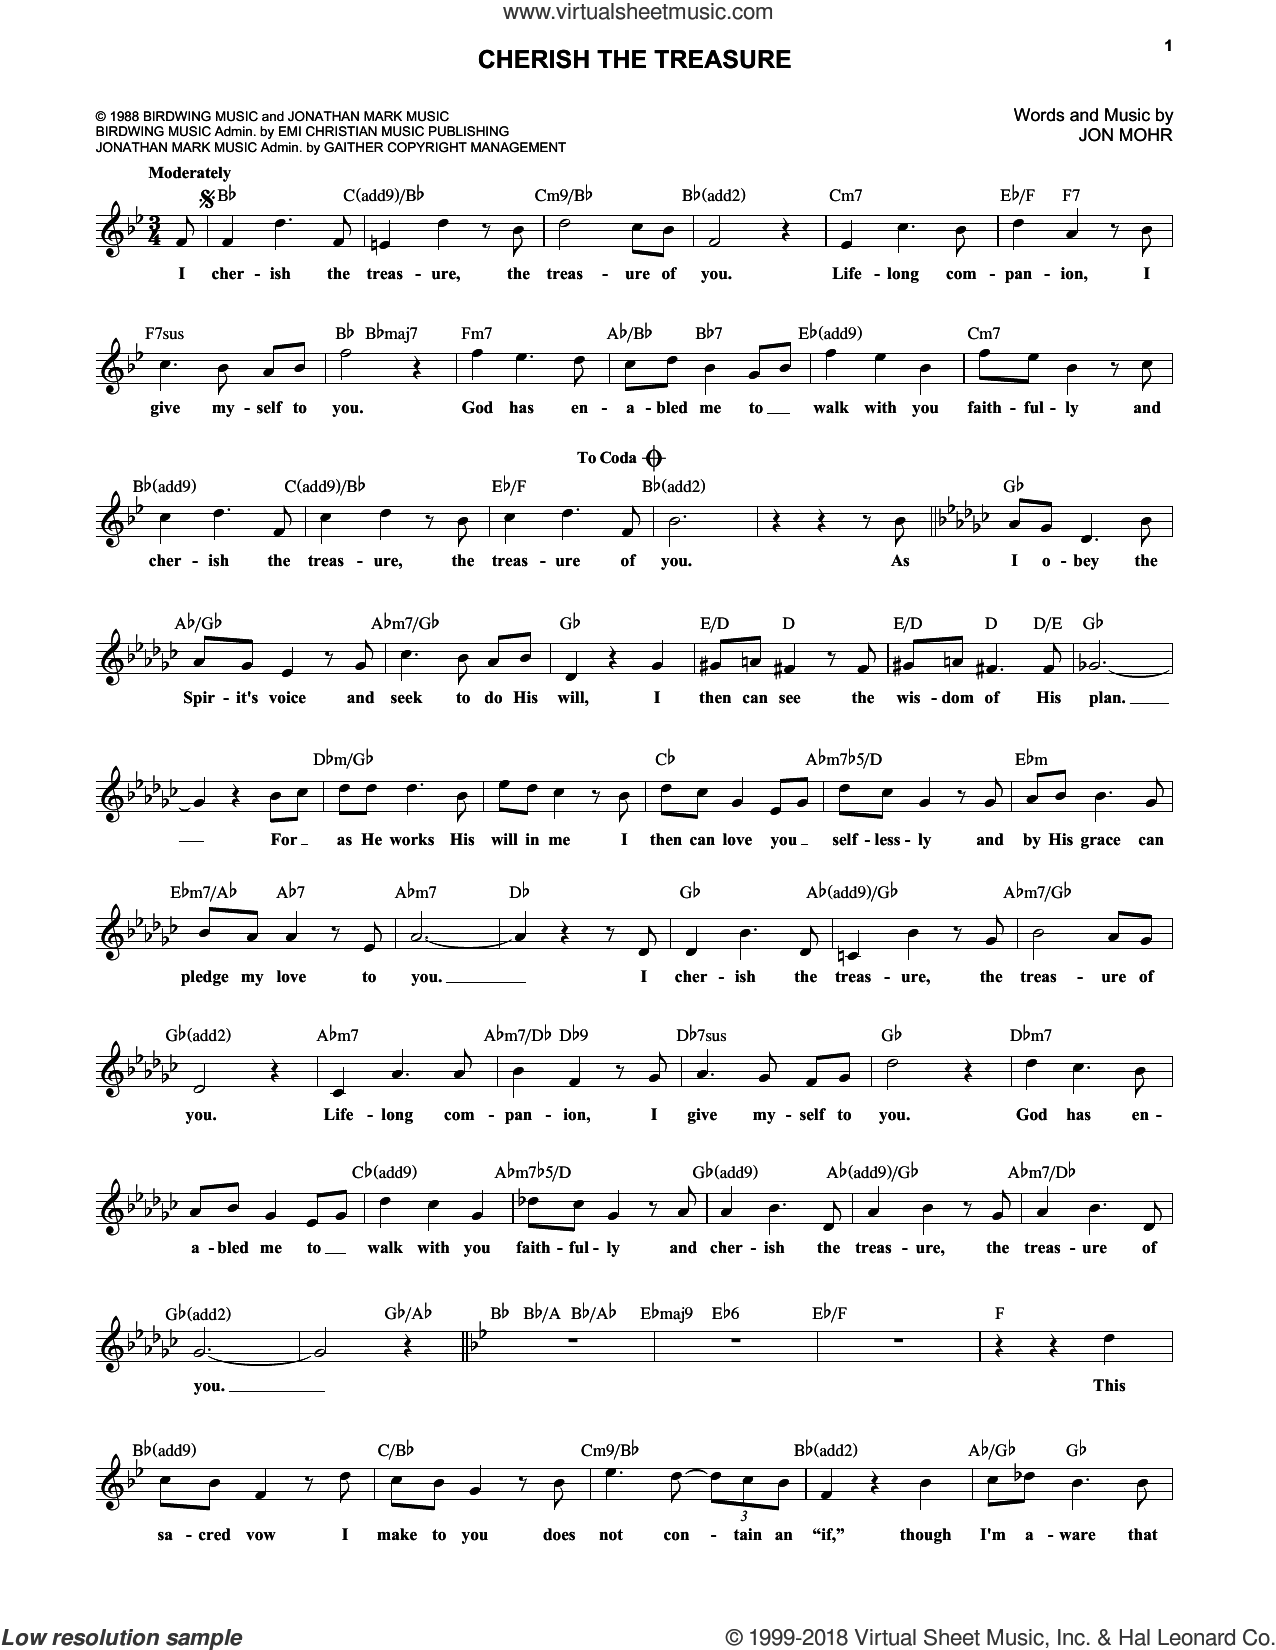 Cherish The Treasure sheet music for voice and other instruments (fake book) by Jon Mohr, wedding score, intermediate skill level